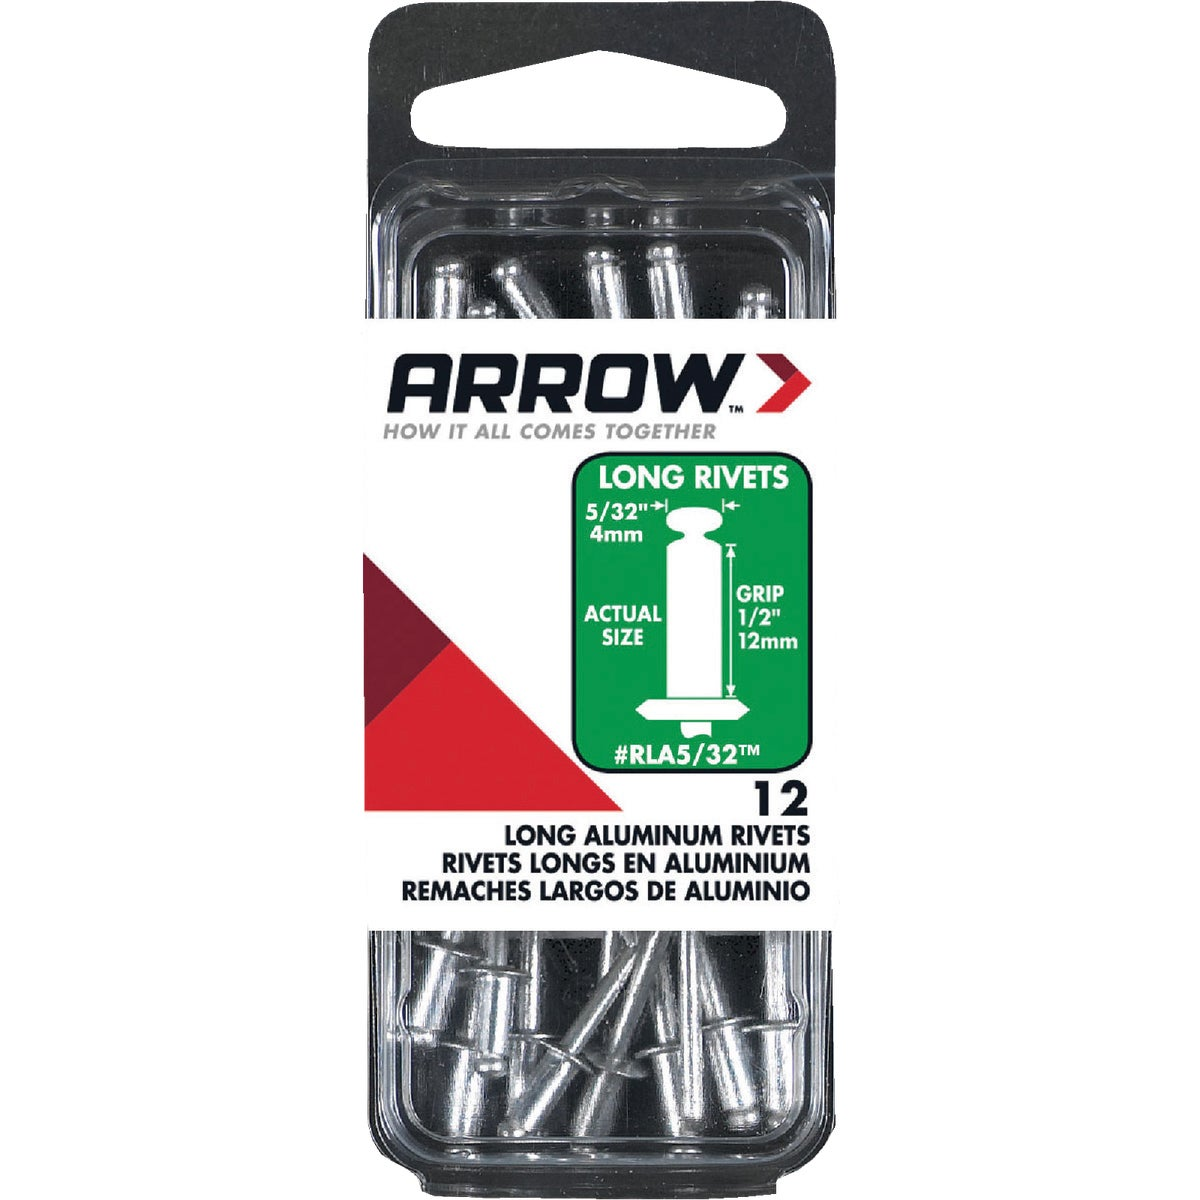 5/32X1/2 ALUM RIVET - RLA5/32 by Arrow Fastener Co